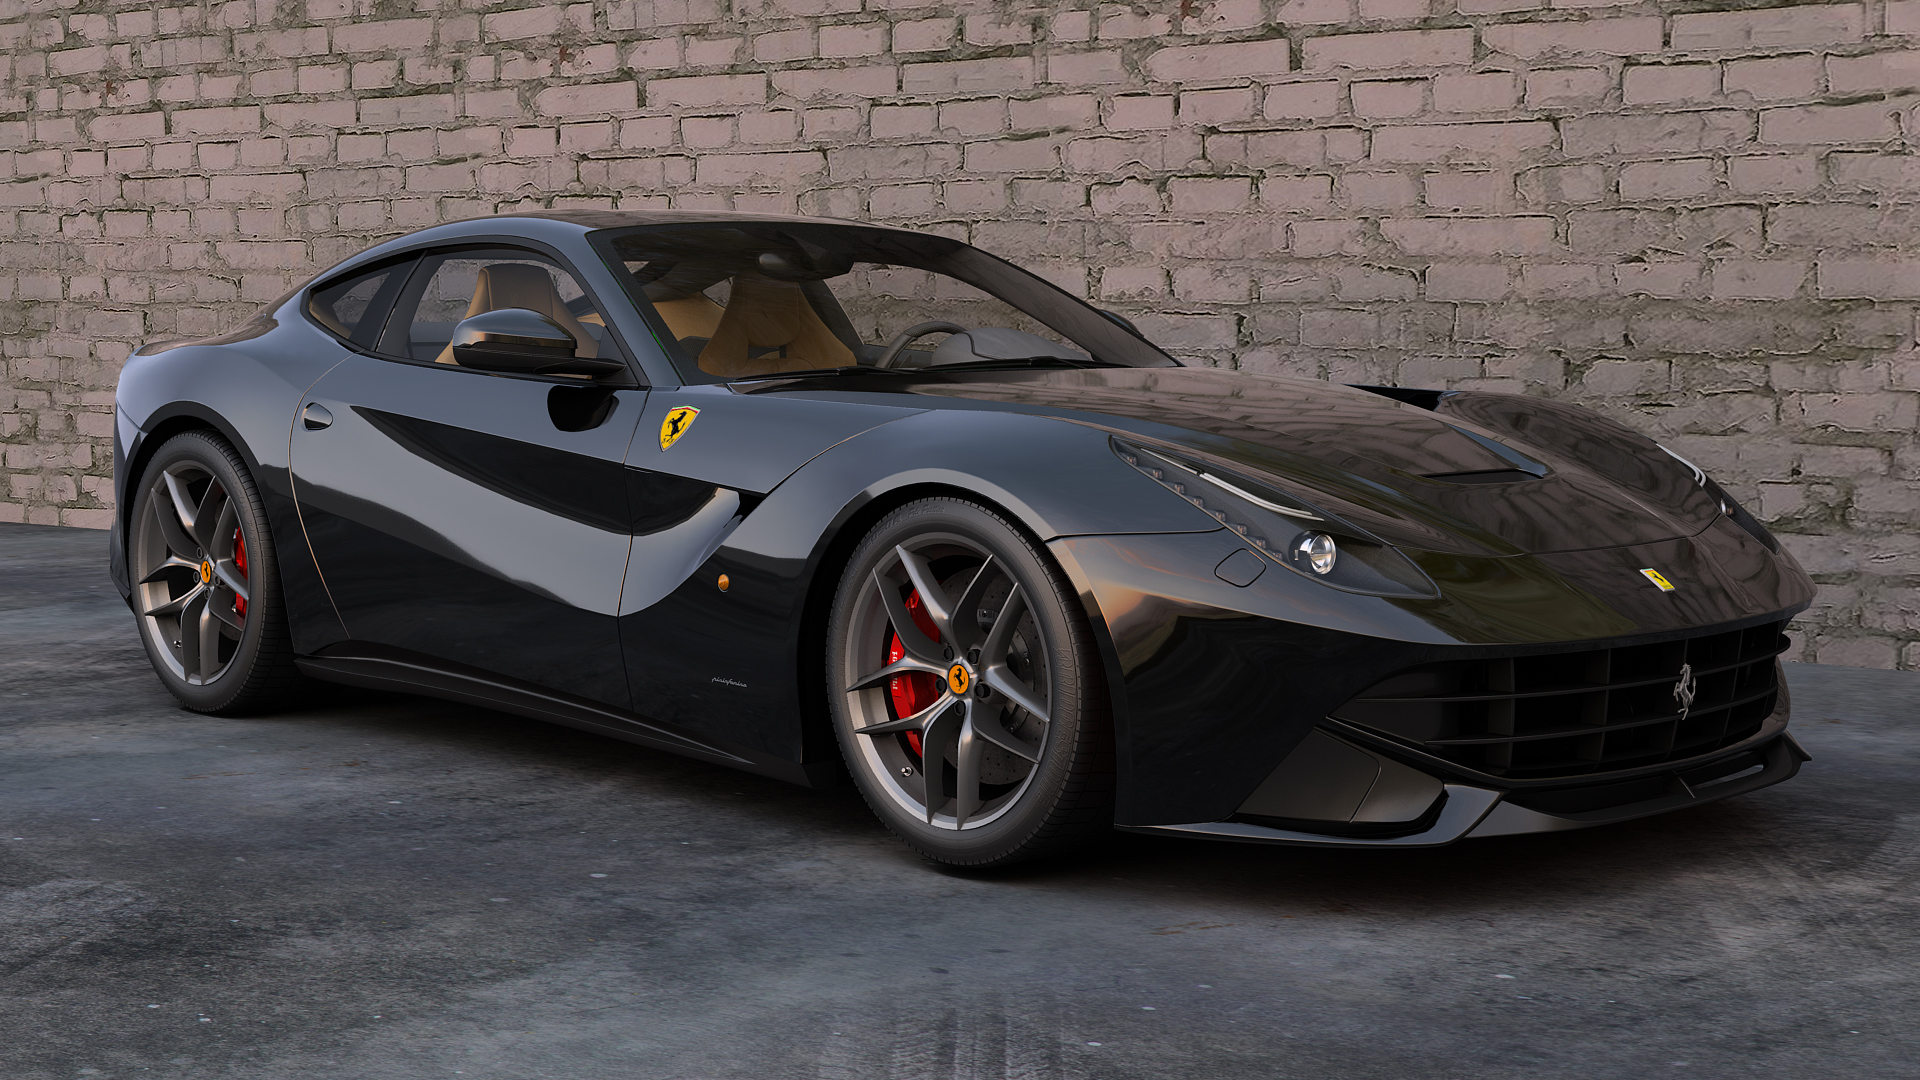 Ferrari F12 Berlinetta 14 High Quality Ferrari F12 Berlinetta Pictures On Motorinfo Org